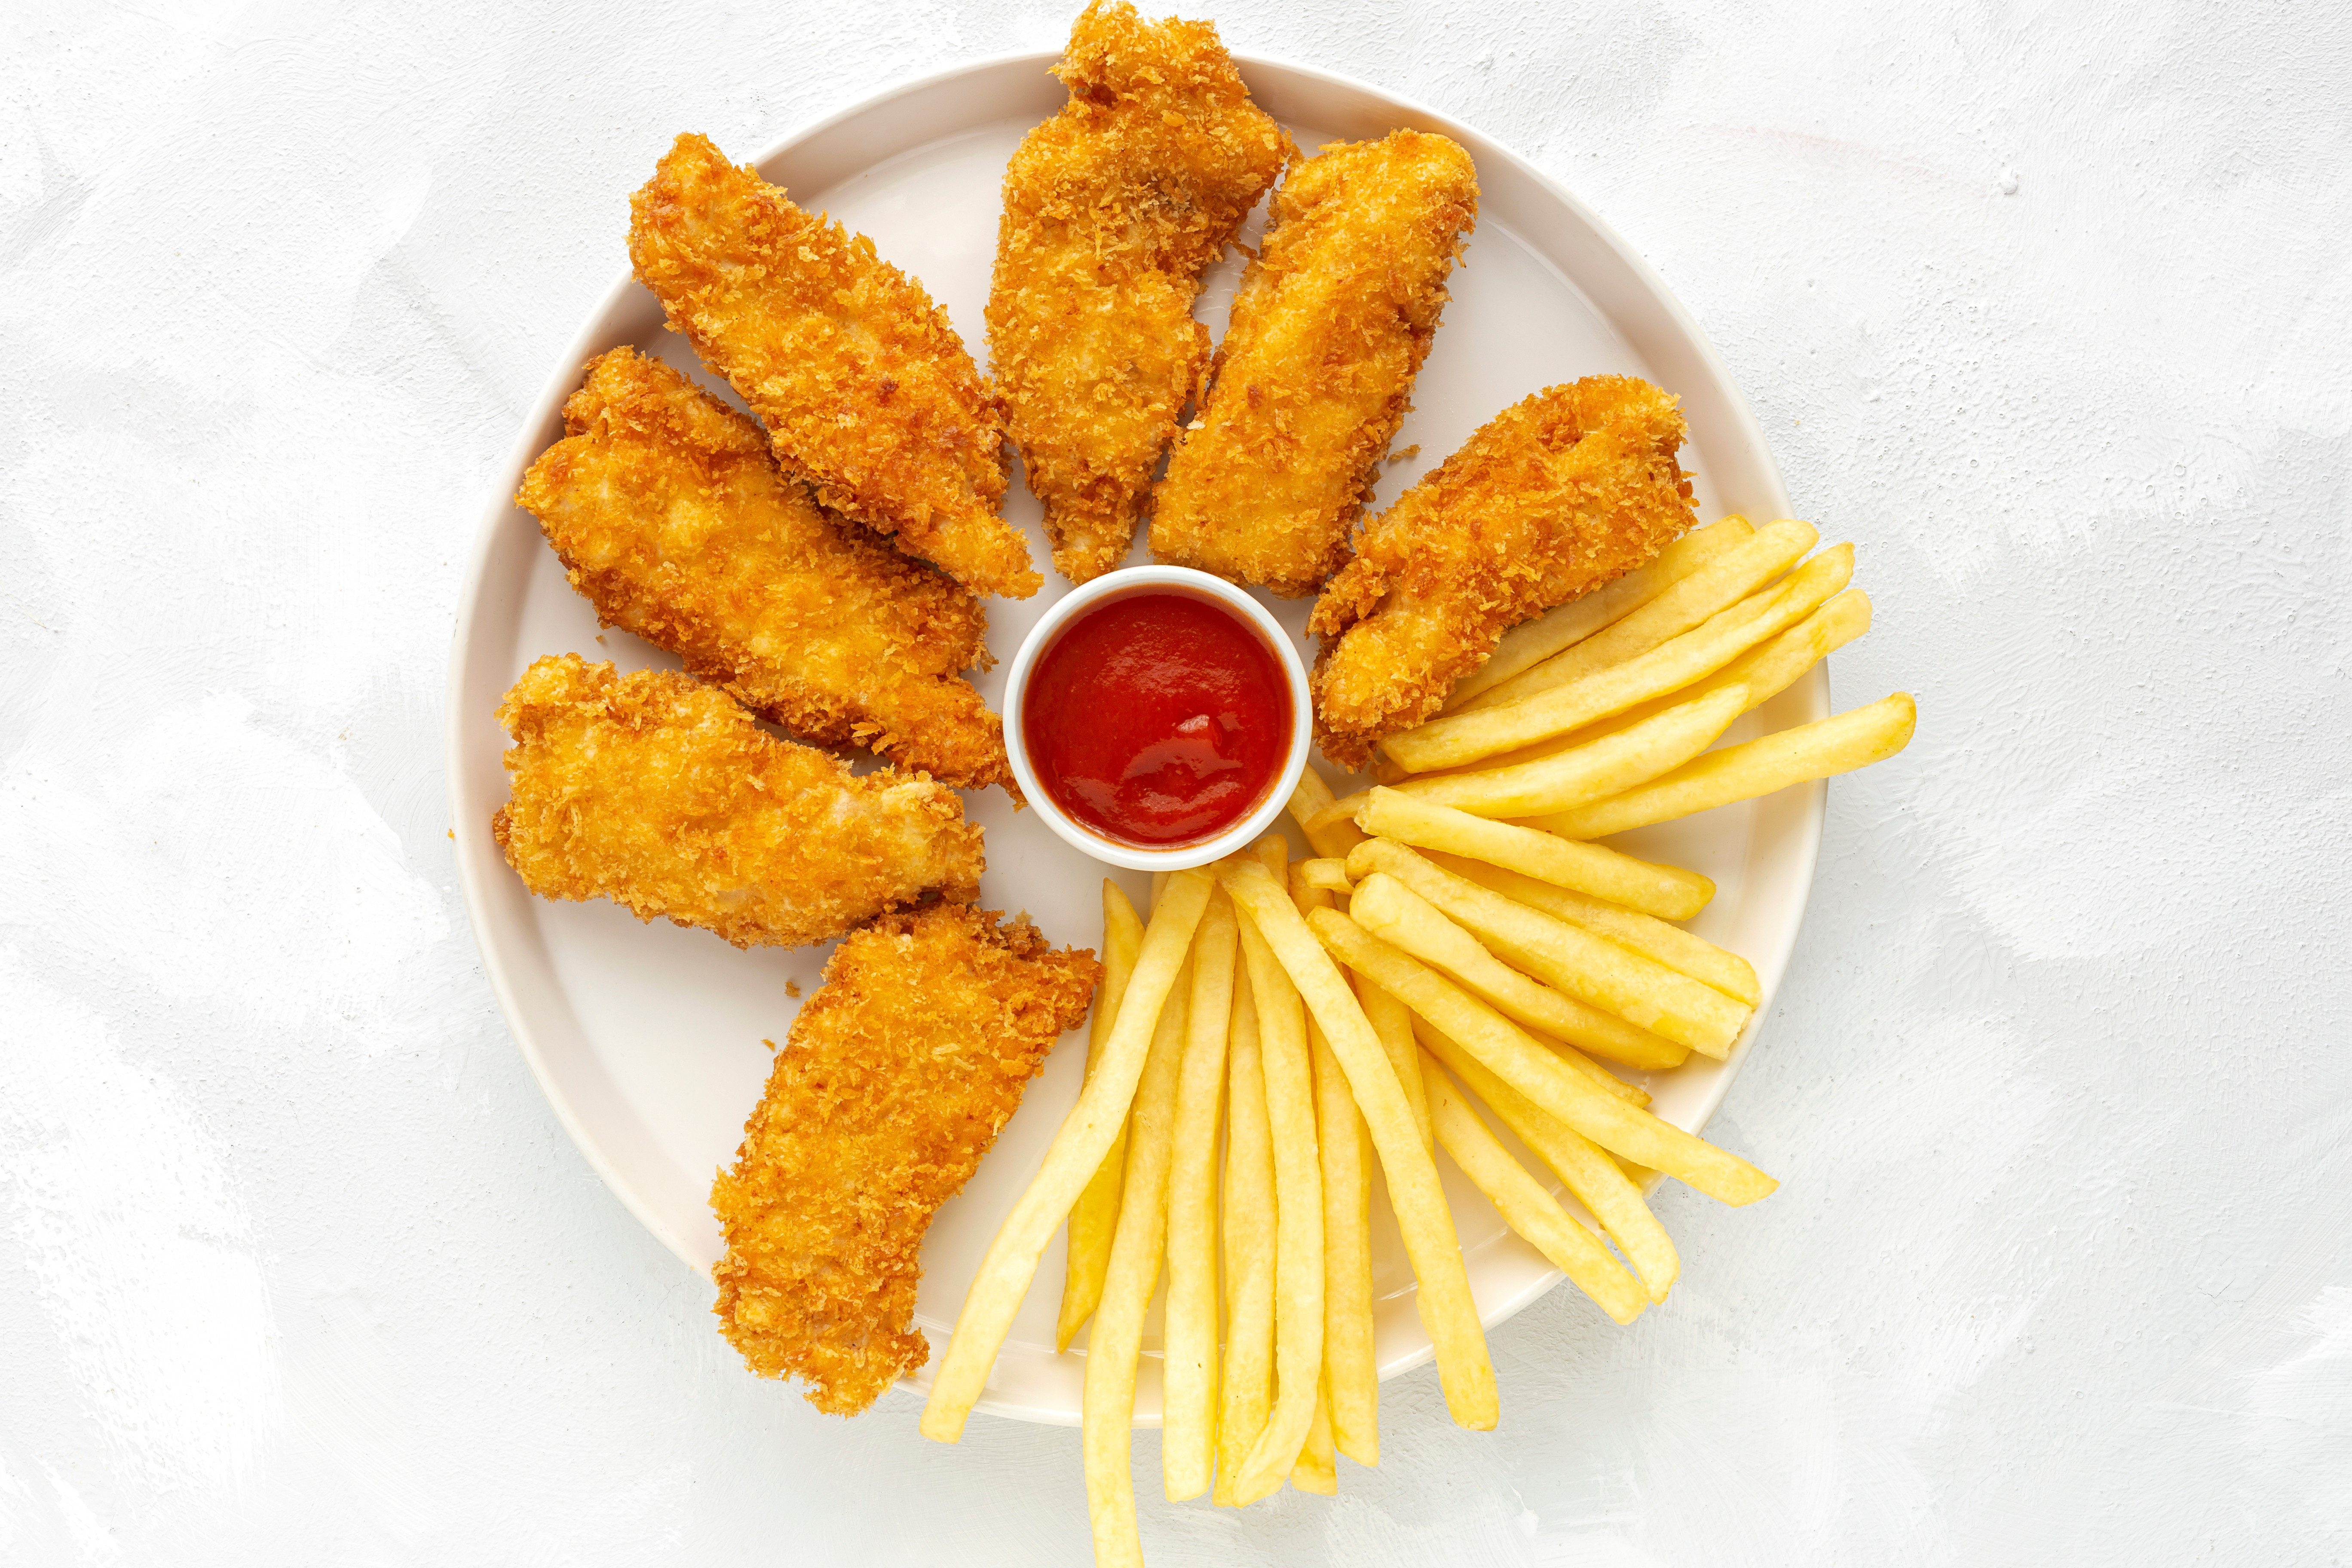 Homemade chicken nuggets battered with panko and French fries views from above on white background. American food